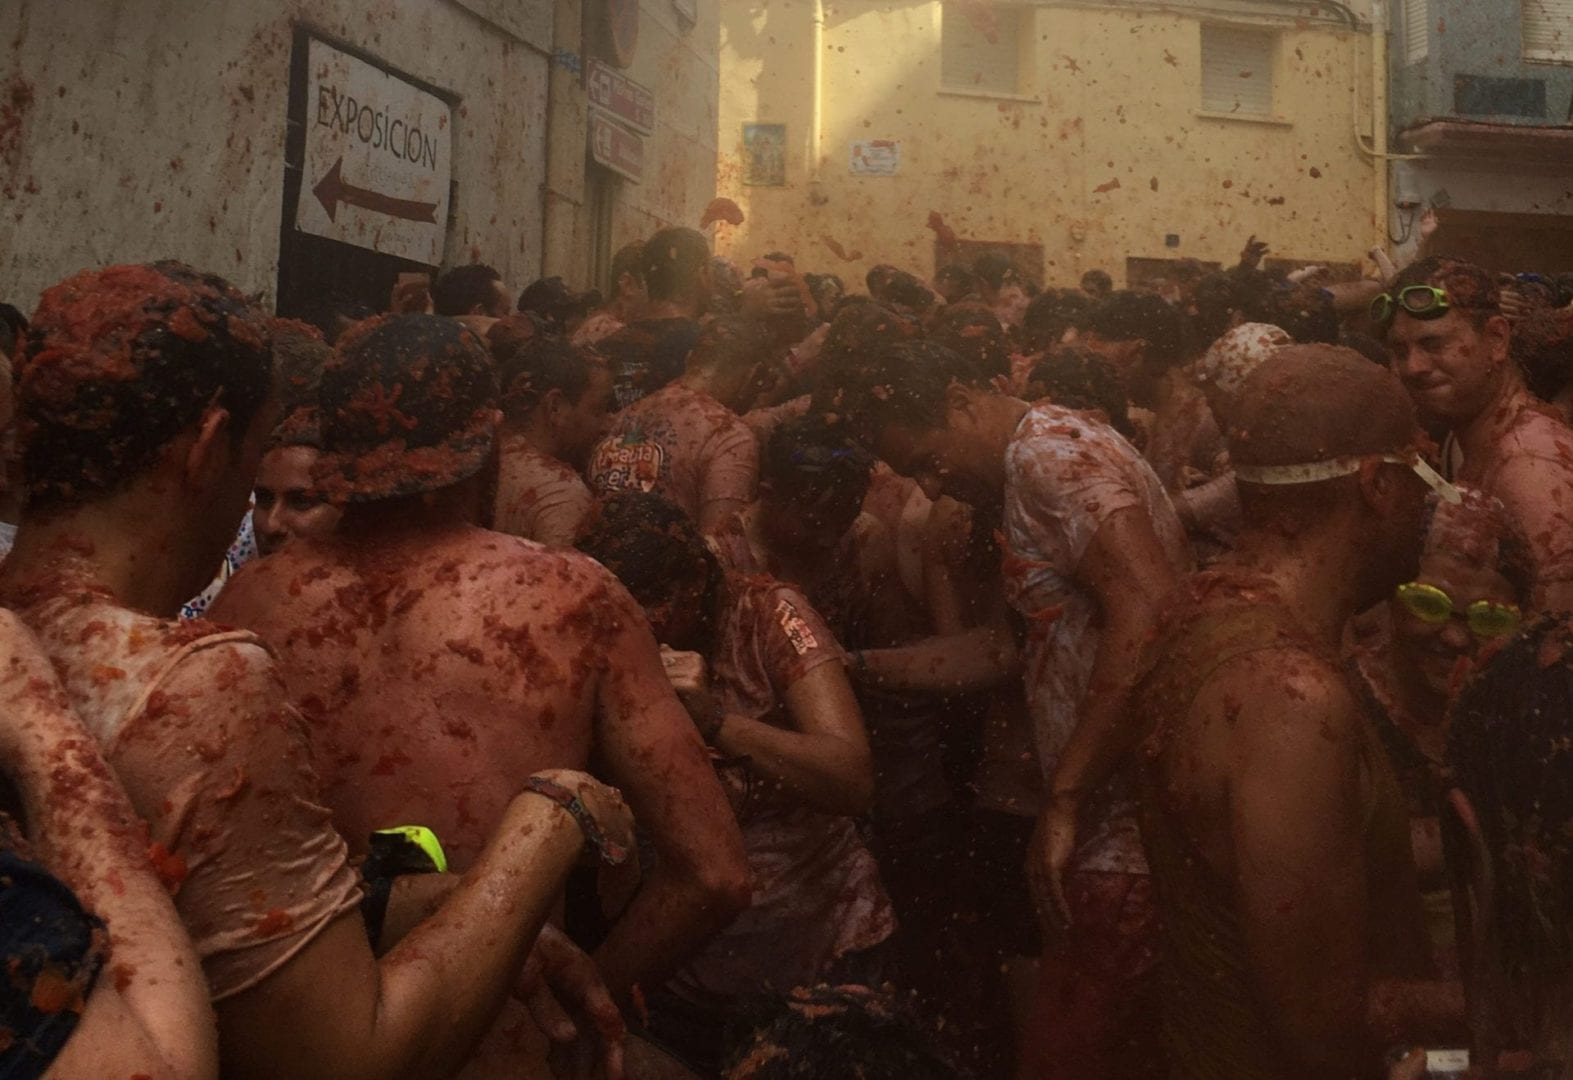 La Tomatina in 24 hours